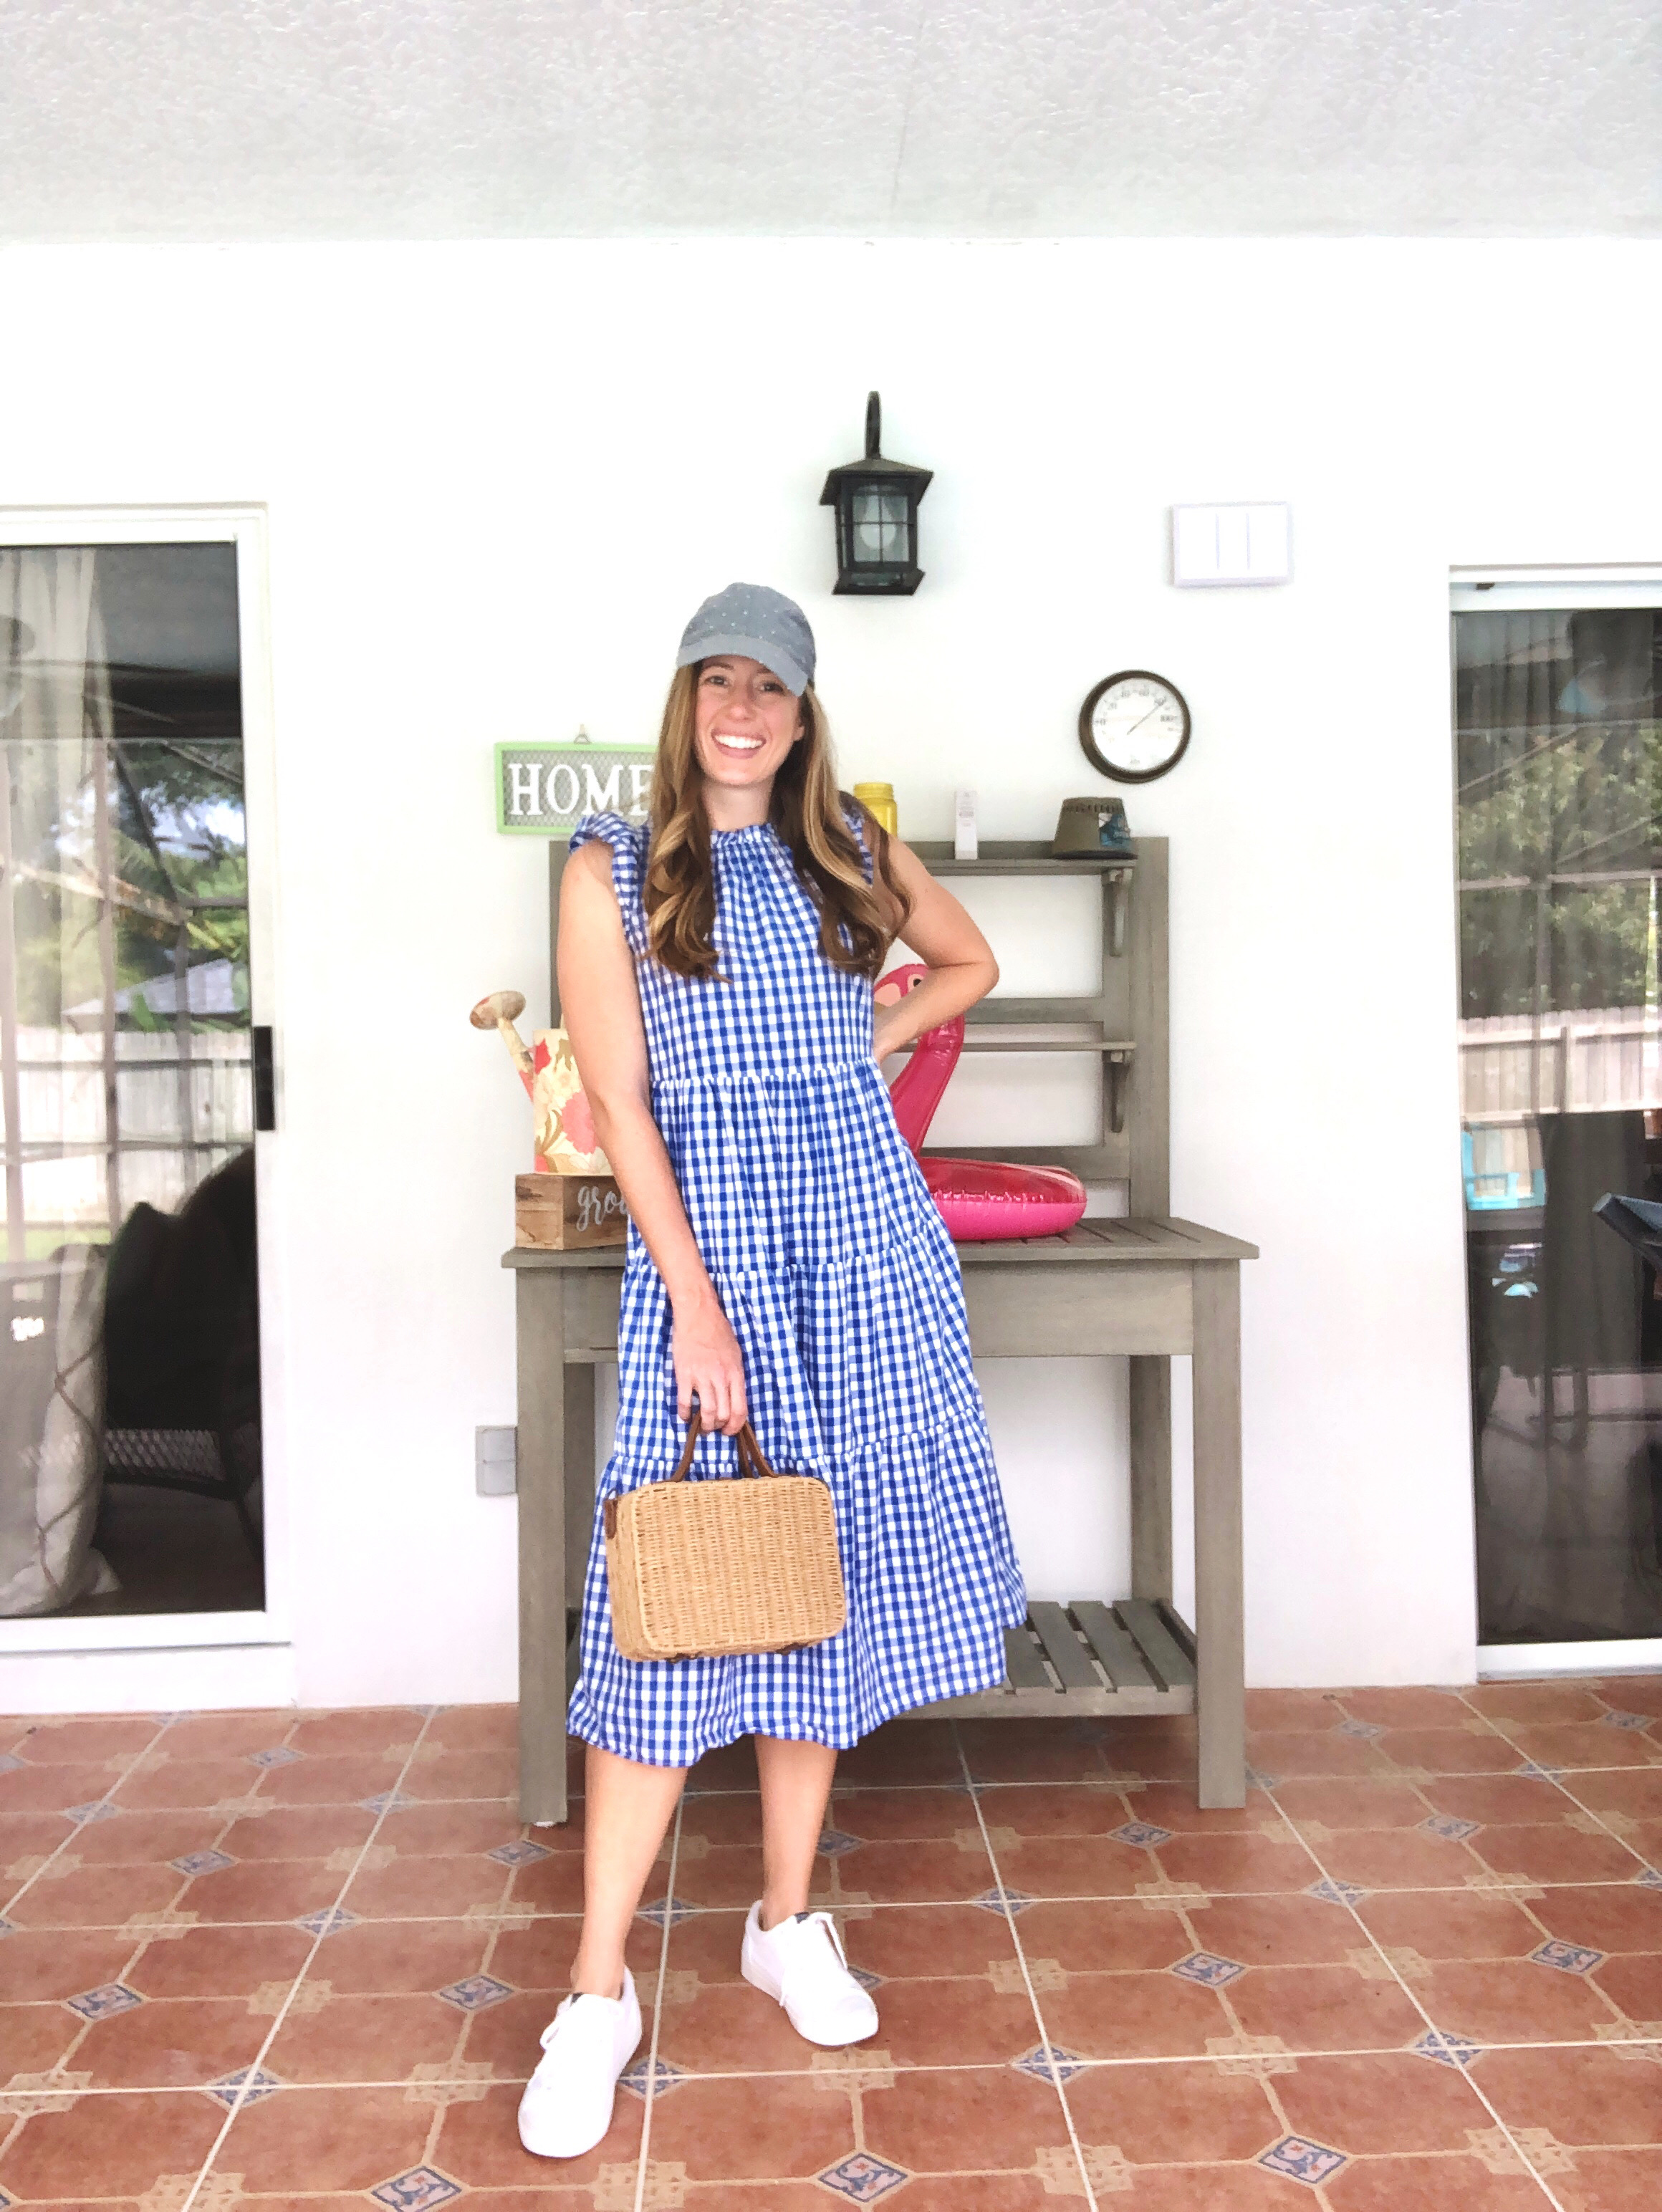 Blue Gingham Babydoll A-line Dress with White Sneakers and a baseball cap